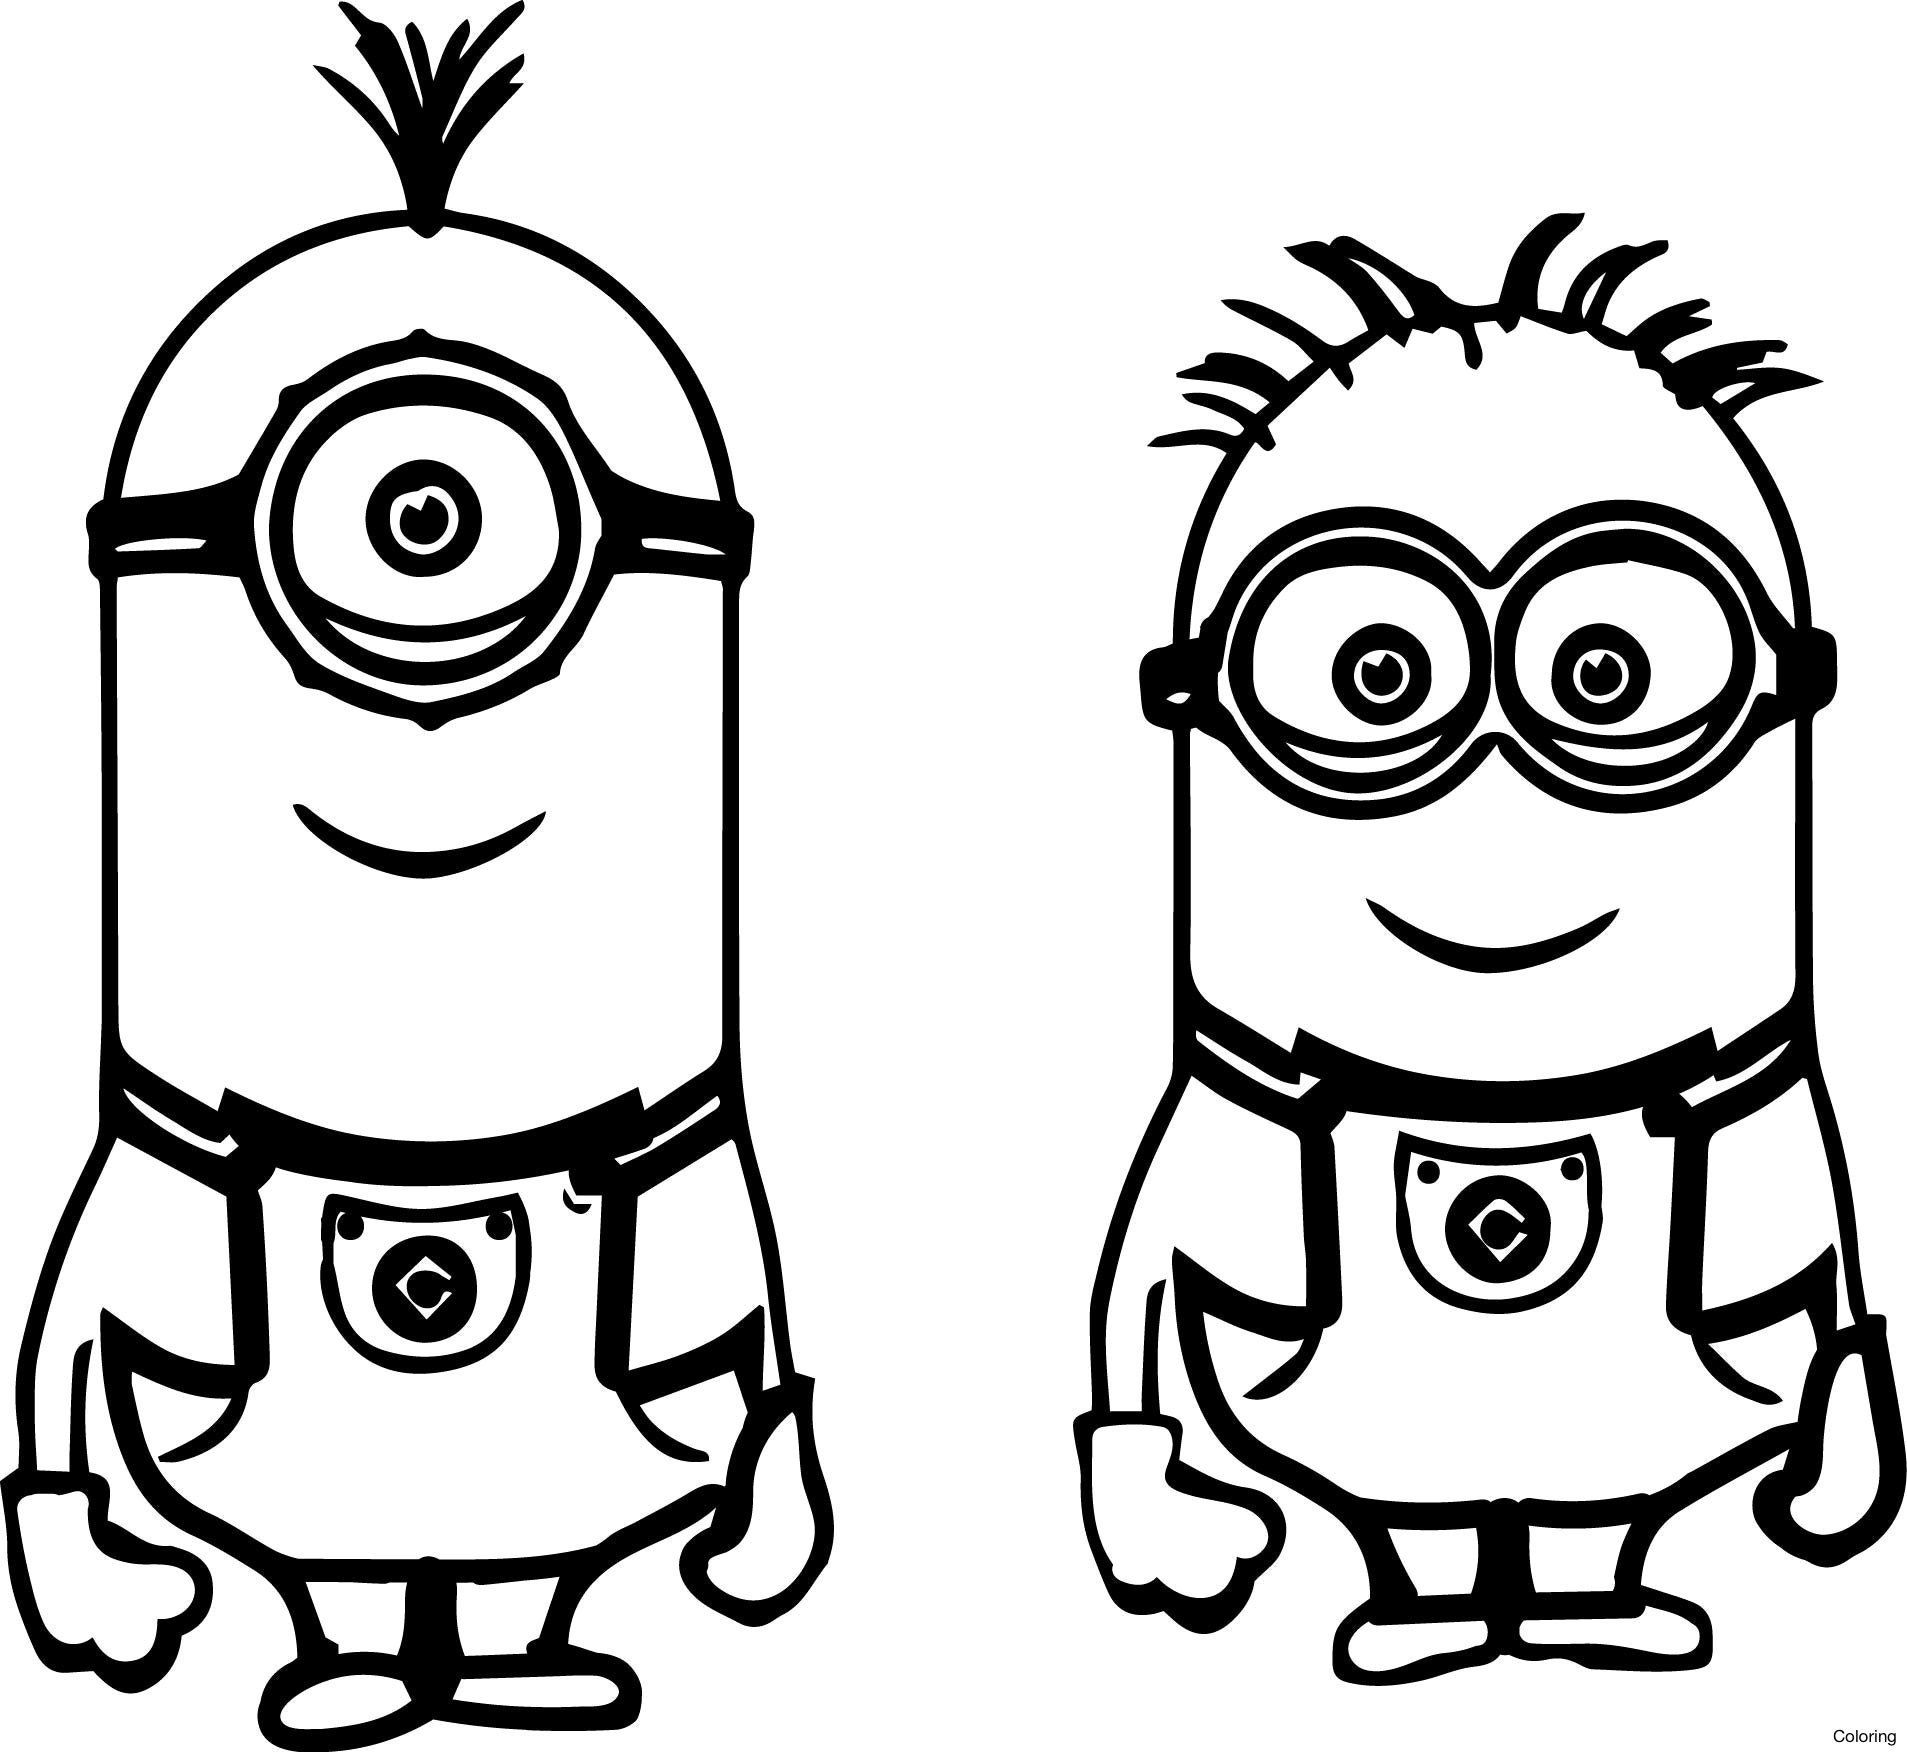 Minions Coloring Pages To Print Lovely Fresh Bob Minions Coloring Pages Cleanty In 2020 Minions Coloring Pages Minion Coloring Pages Cute Coloring Pages